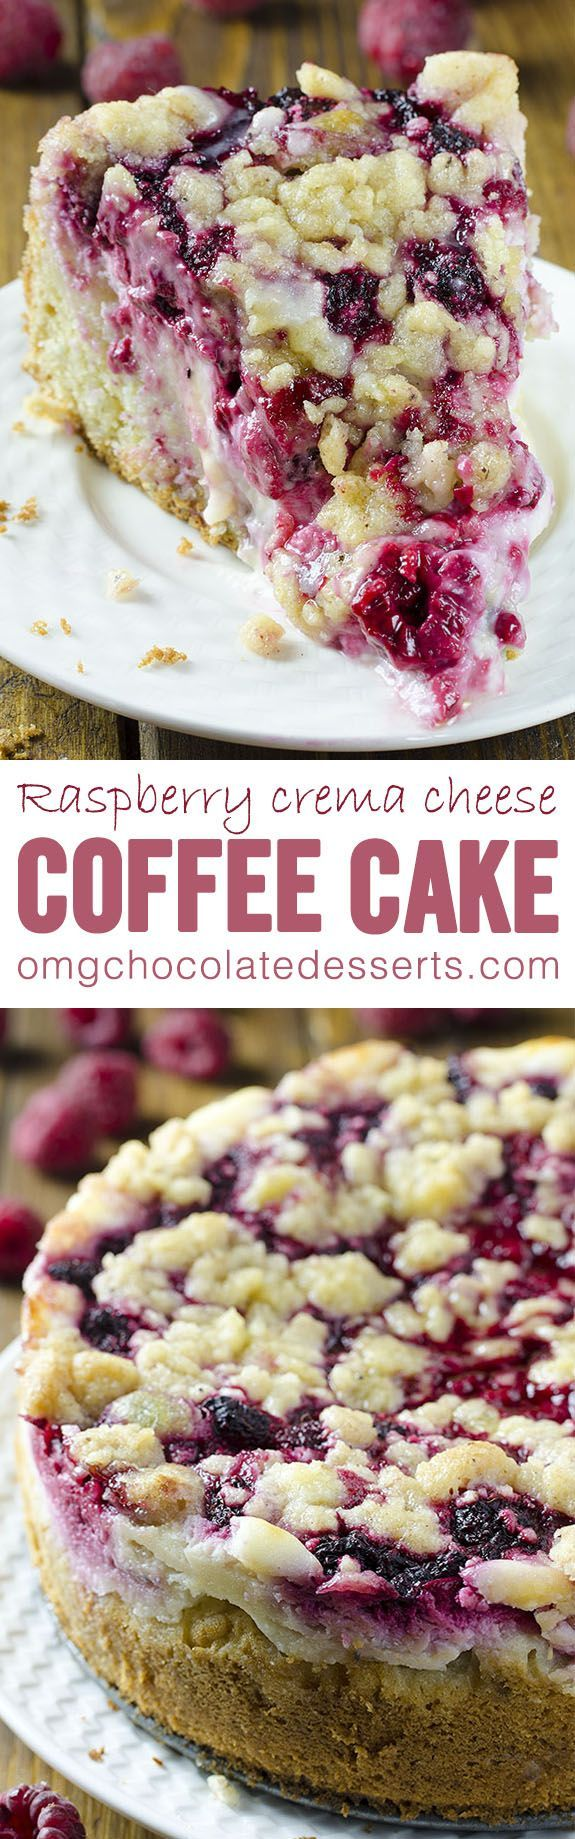 Beautiful raspberry coffee cake can be your perfect holiday breakfast recipe. Meet your new favorite coffee cake recipe.